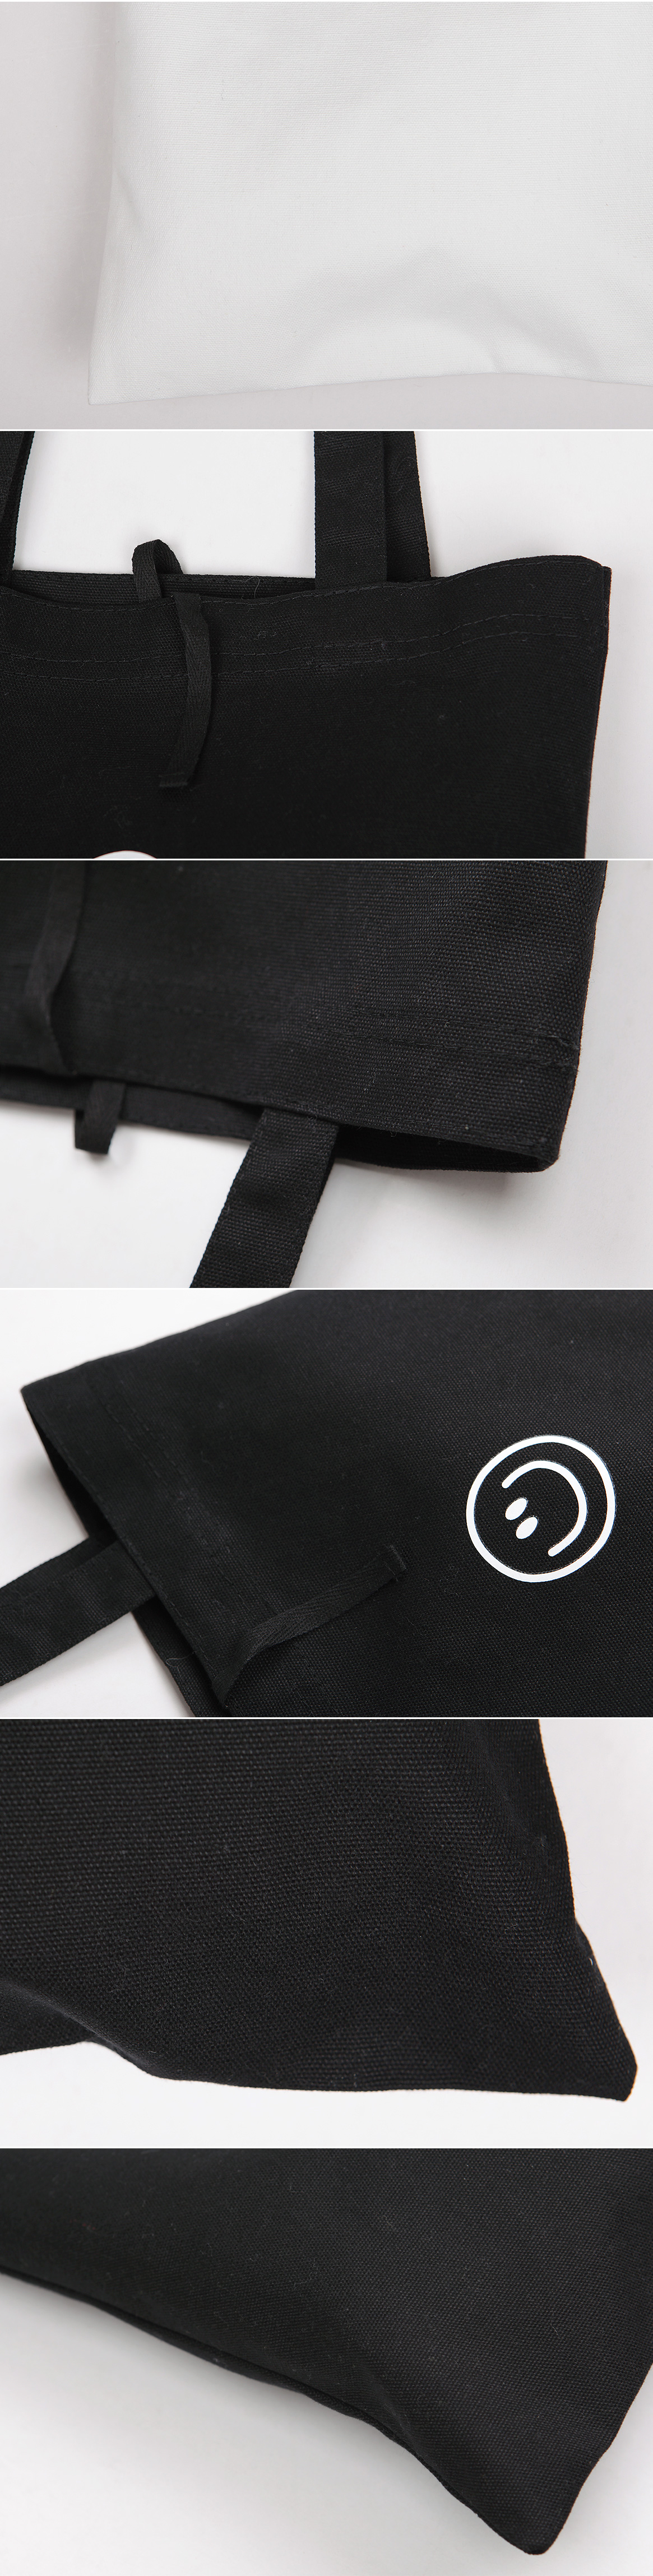 Smiley Eco Bag with zipper pocket and straps